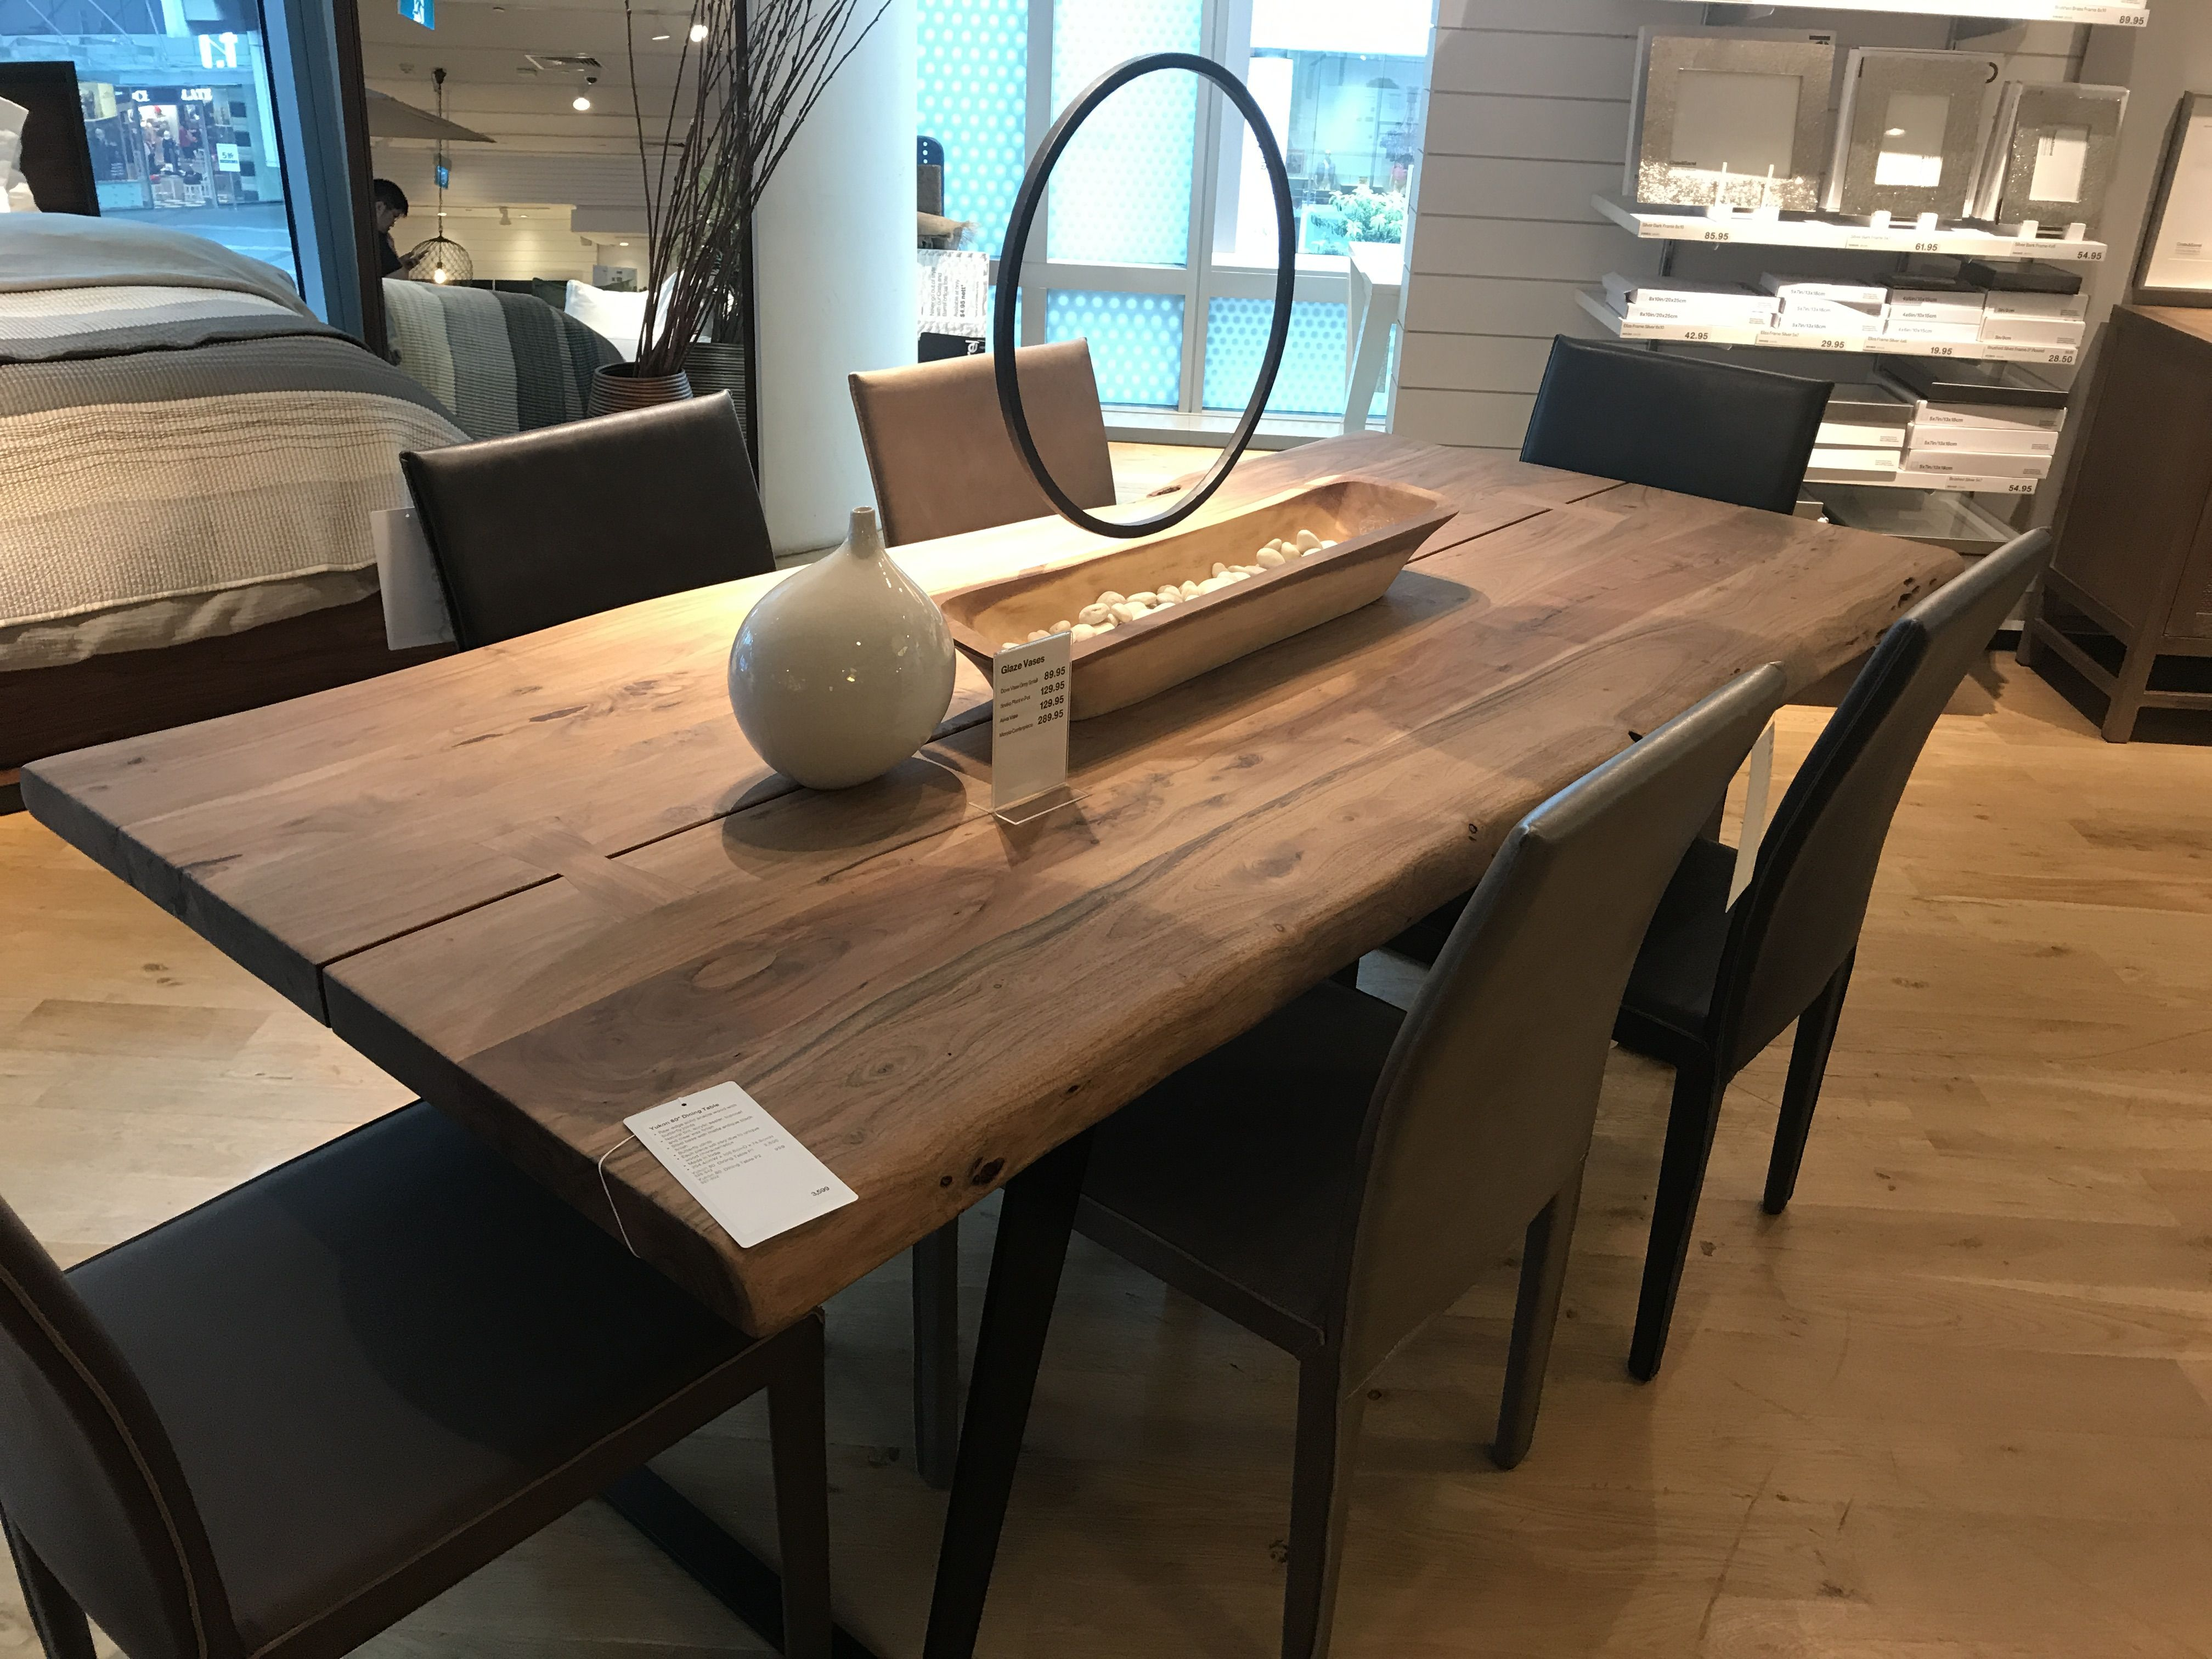 42+ Crate and barrel dining table set Ideas